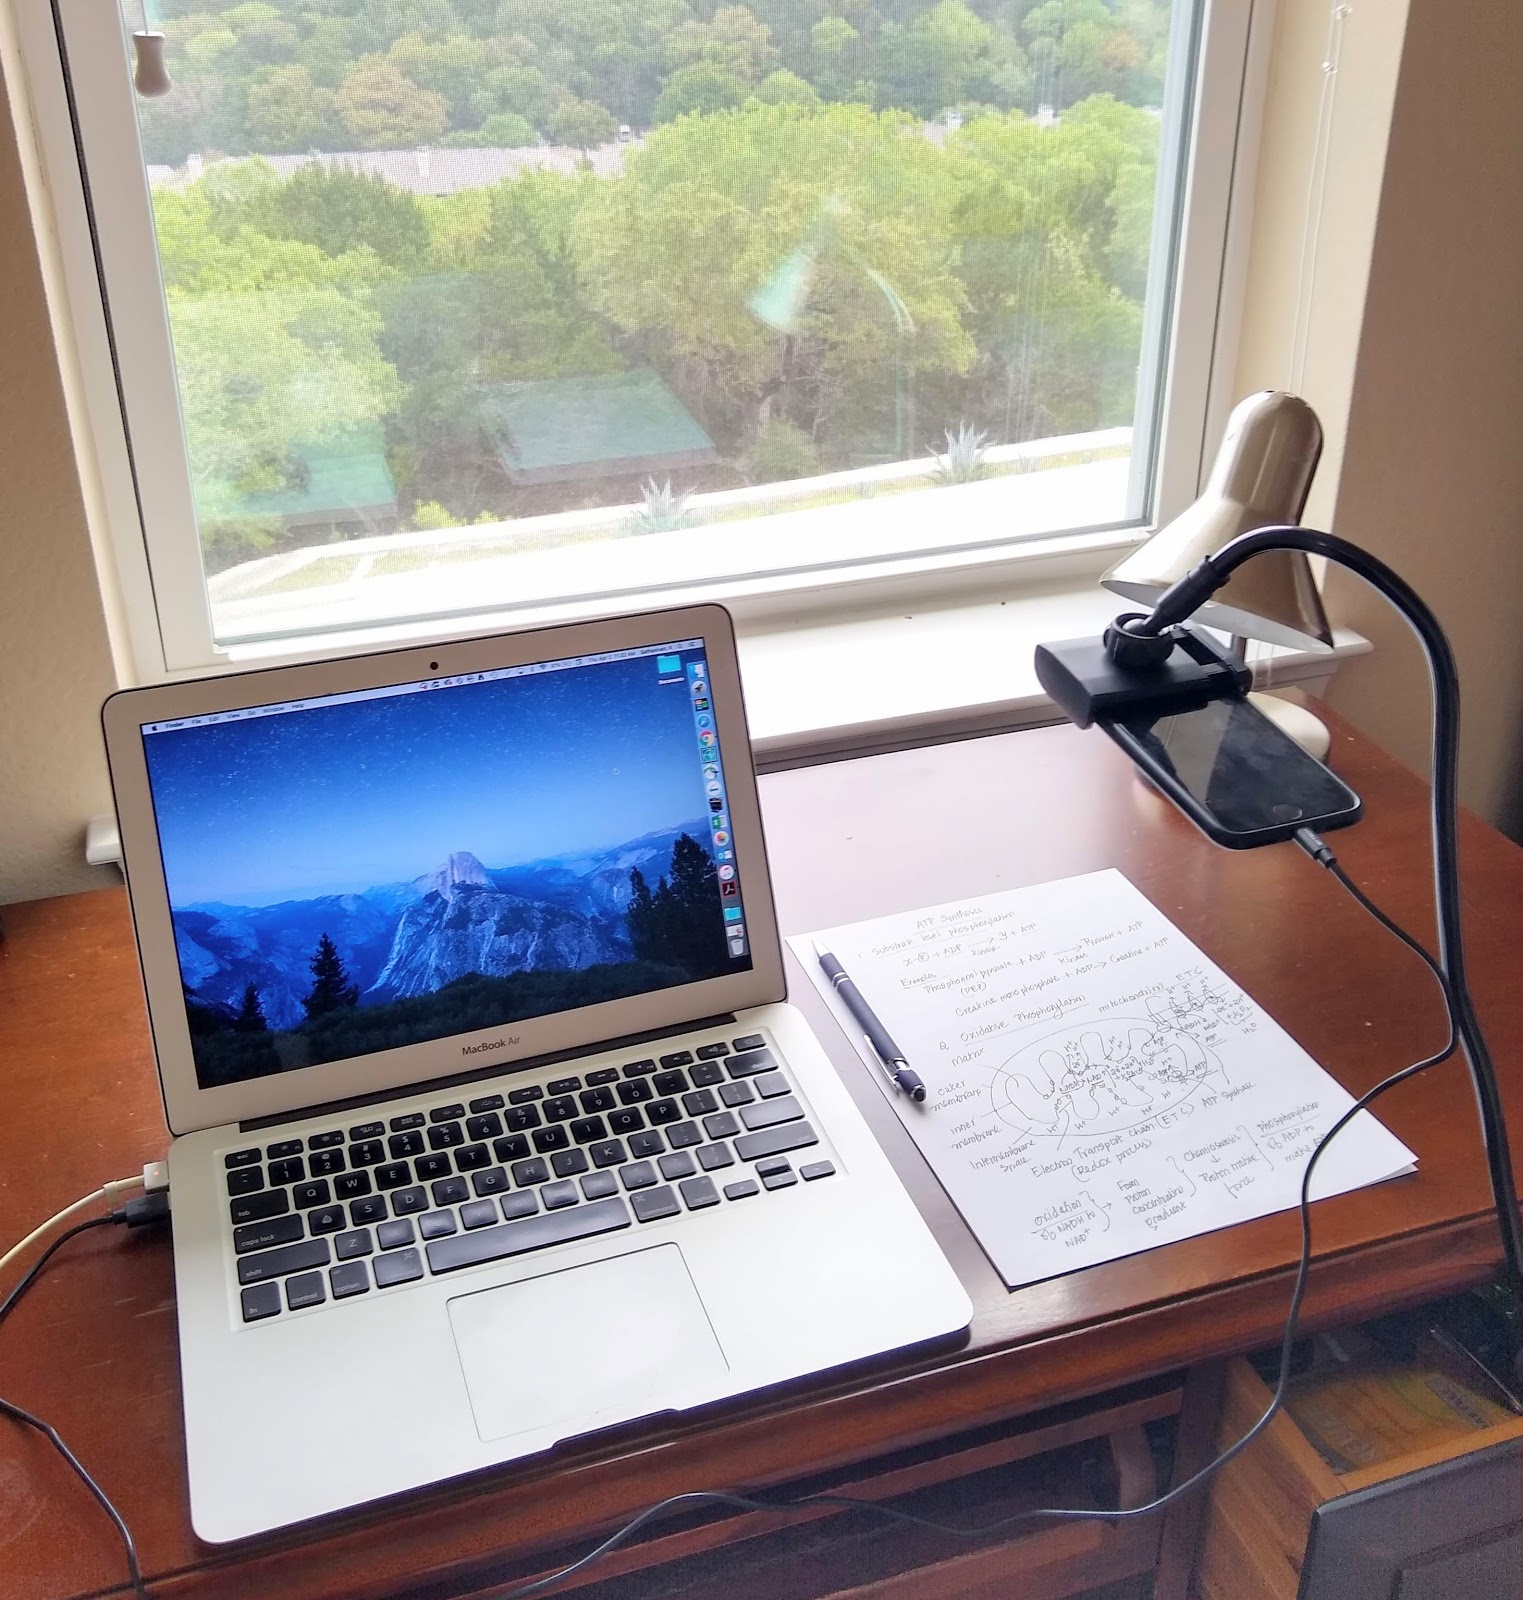 How to Use Your iPhone as a Document Camera in Zoom